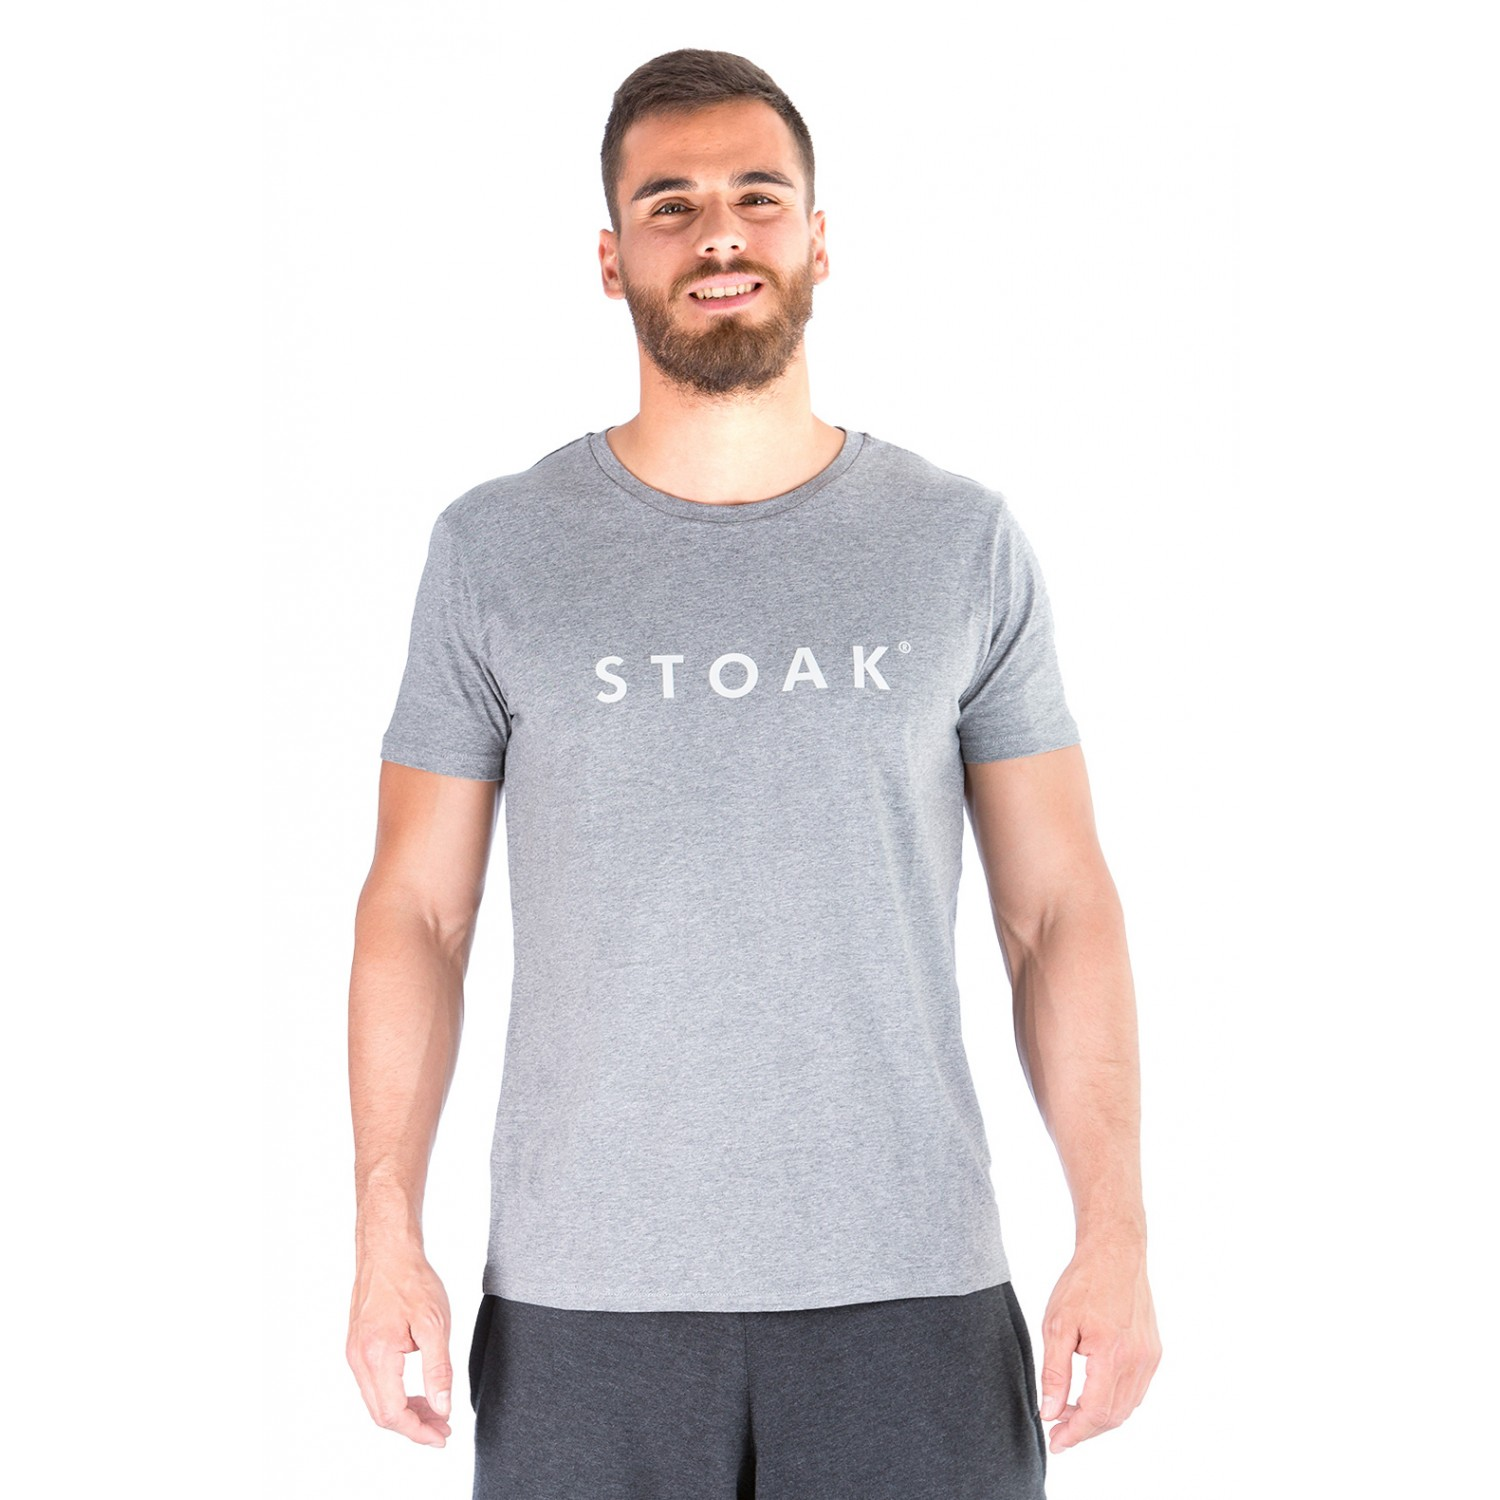 STOAK ROCK T-Shirt